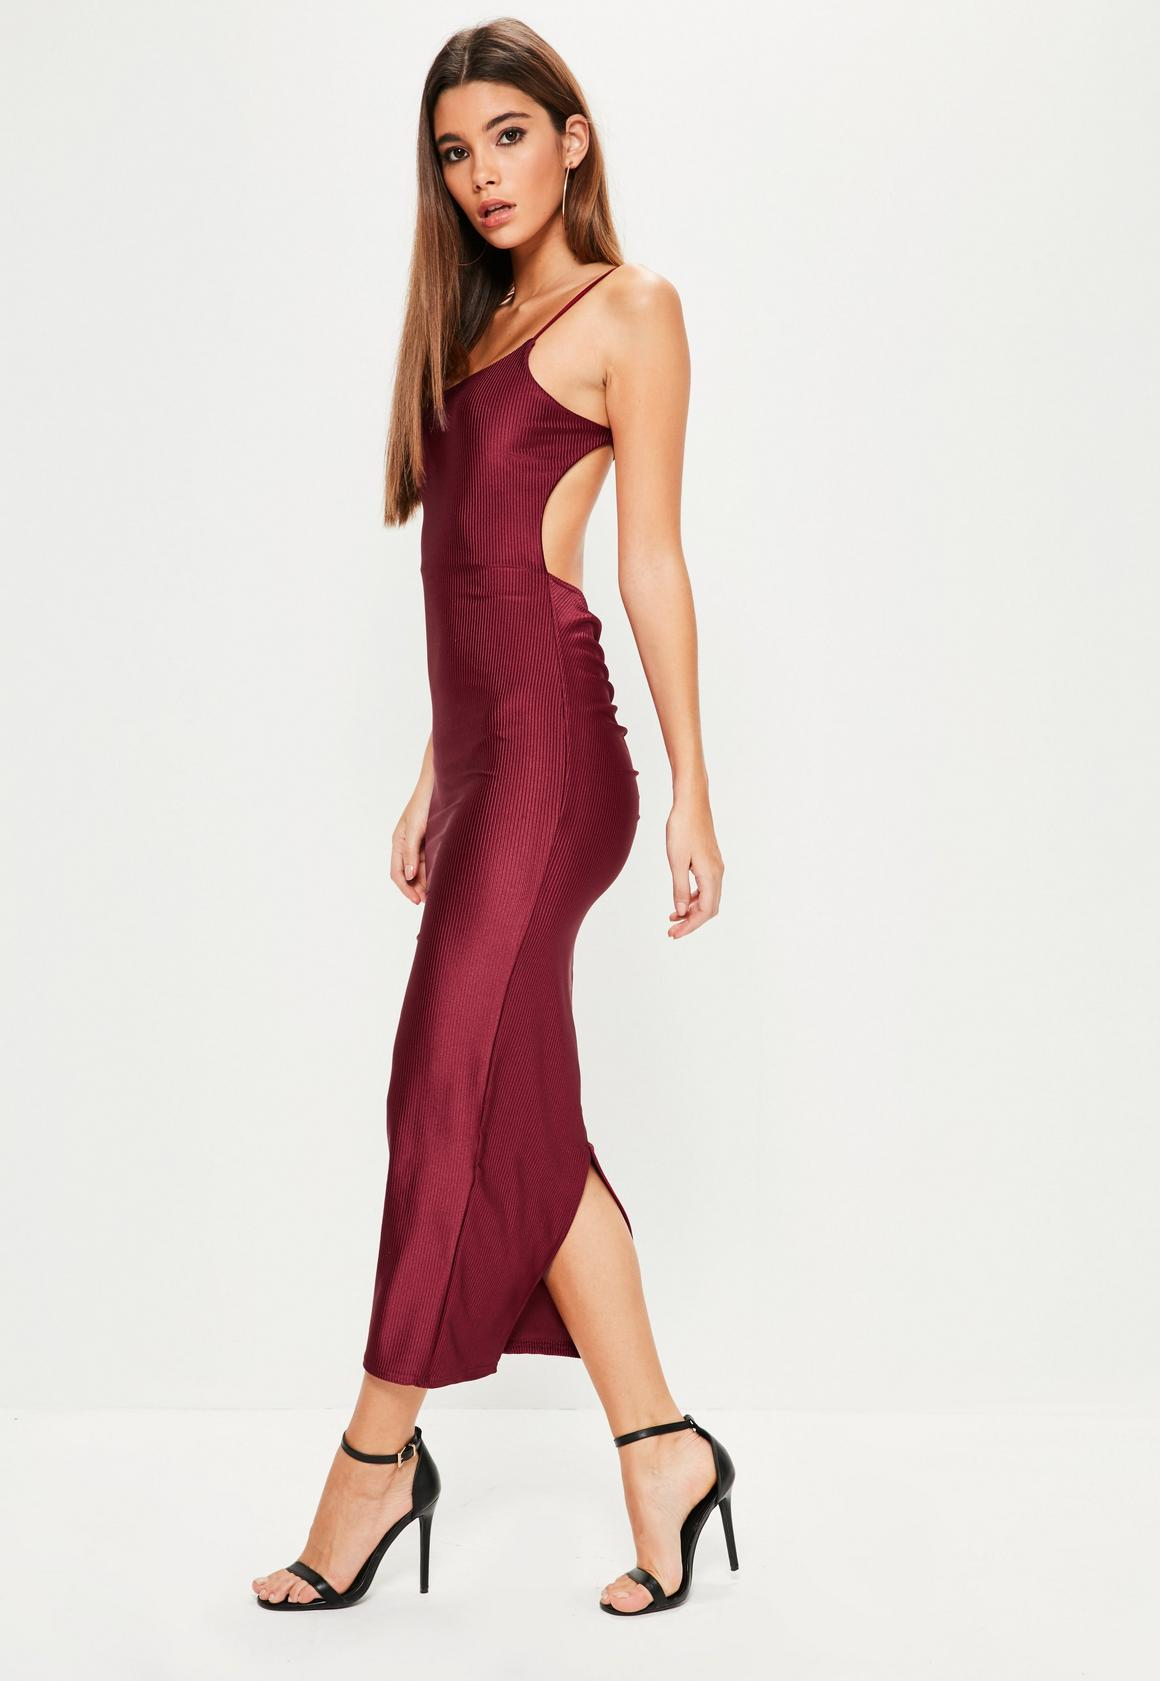 Burgundy Ribbed Backless Ruched Back Midi Dress | Missguided